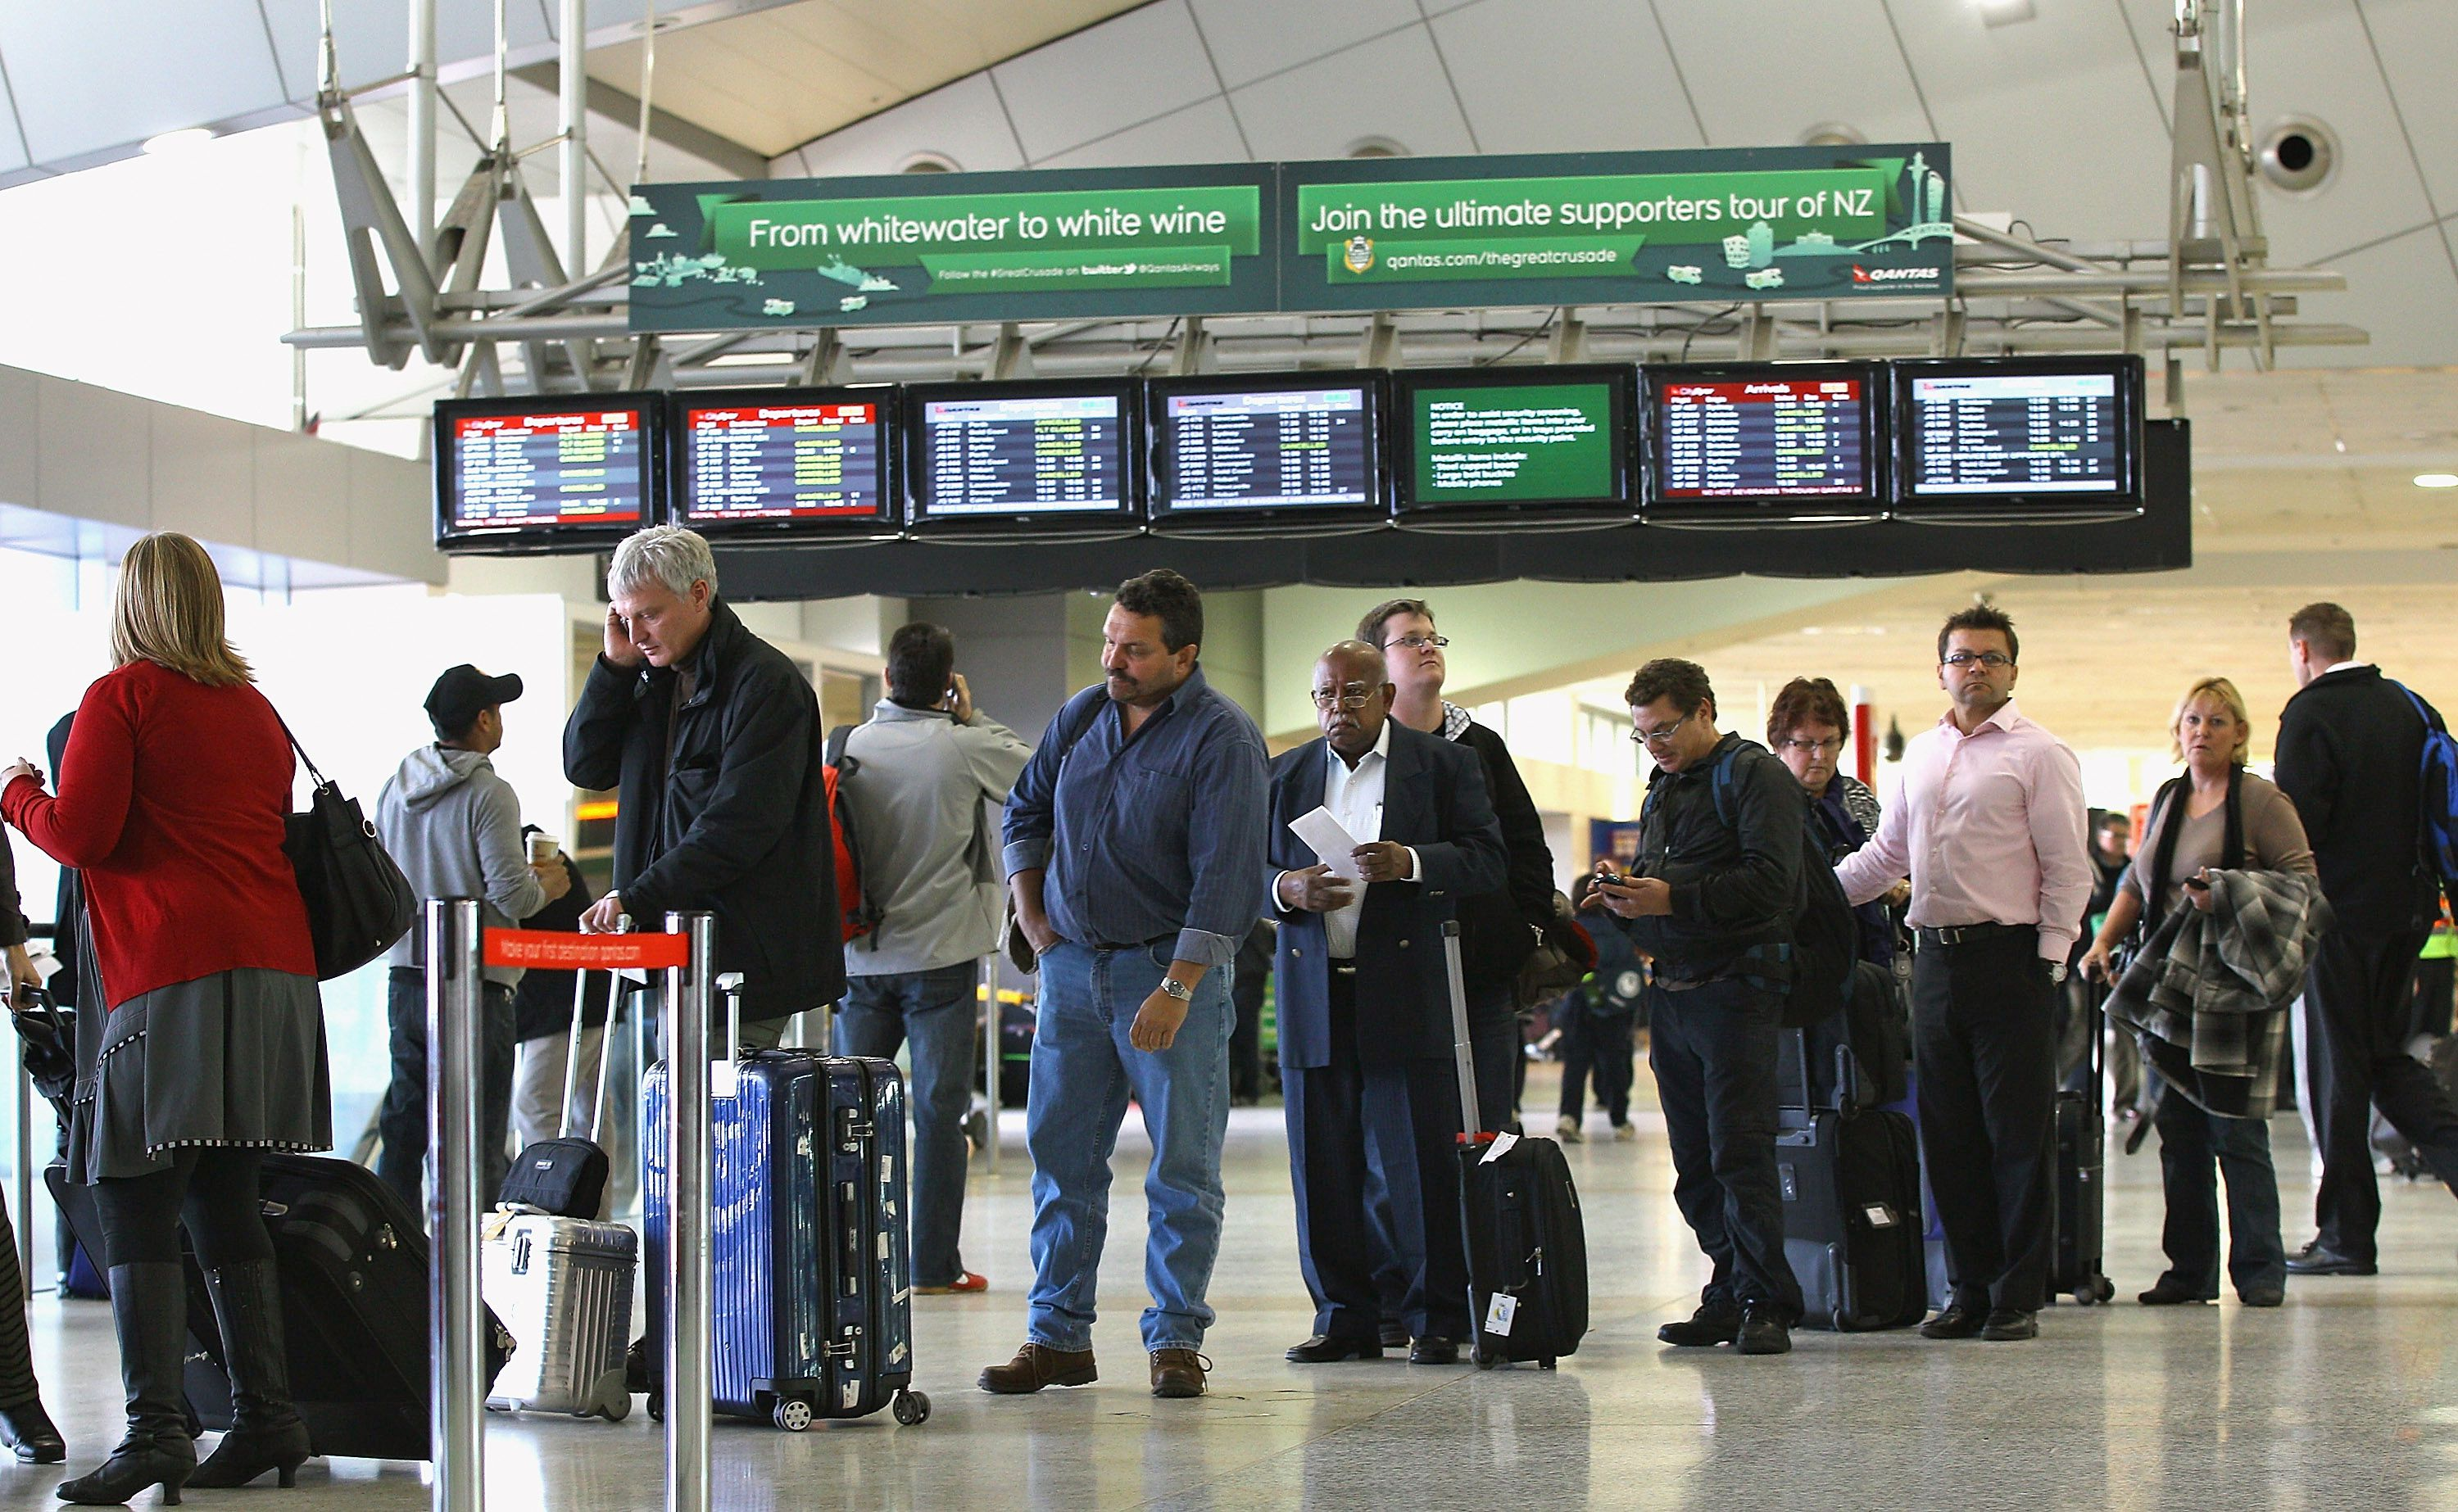 several people waiting in a long line at an airport terminal